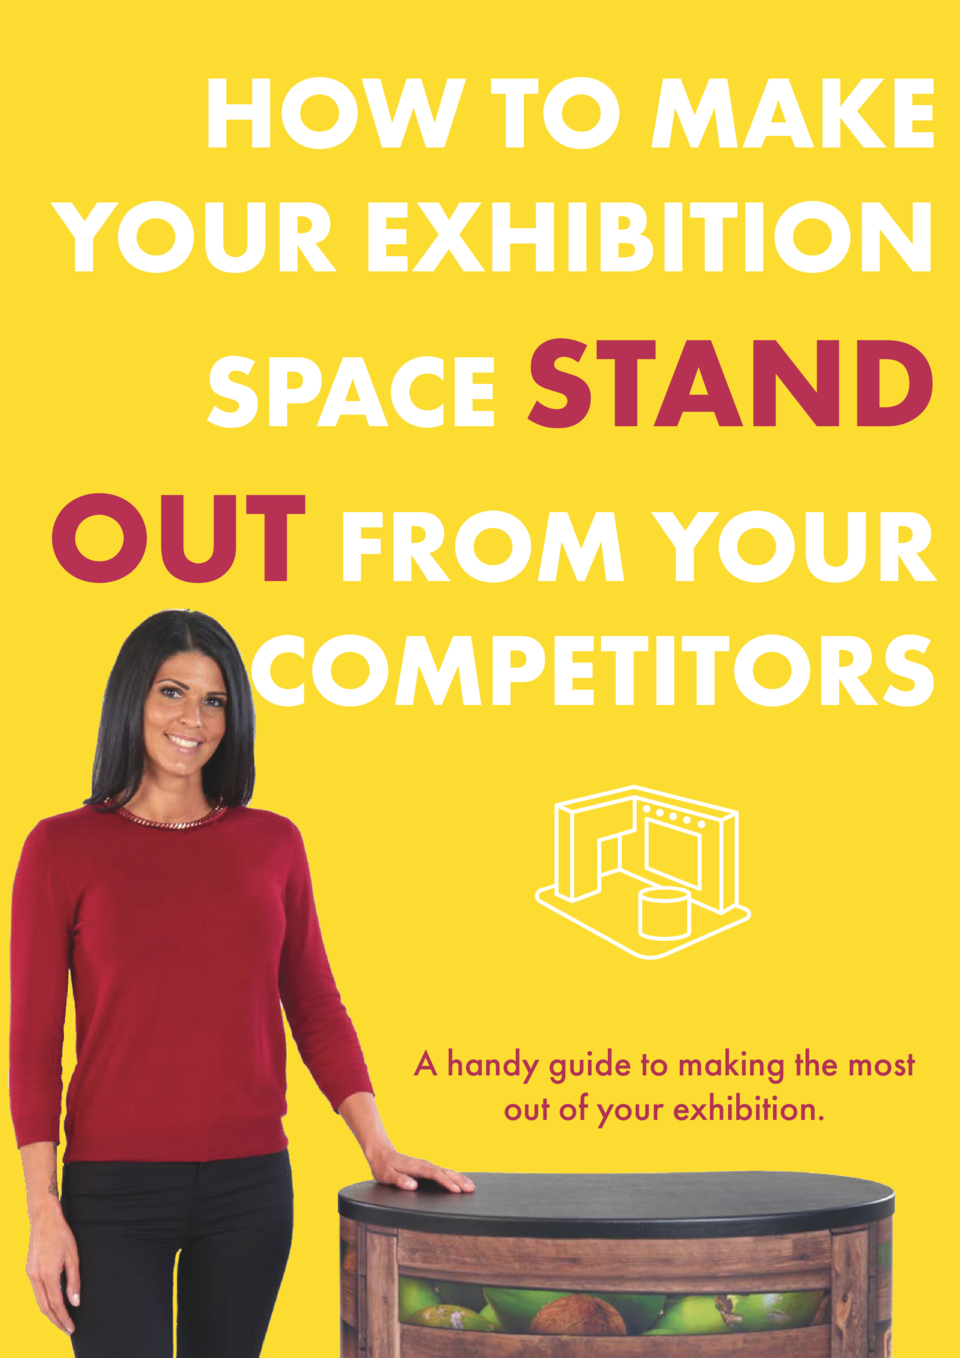 HOW TO MAKE YOUR EXHIBITION SPACE STAND  OUT FROM YOUR  COMPETITORS  A handy guide to making the most out of your exhibiti...